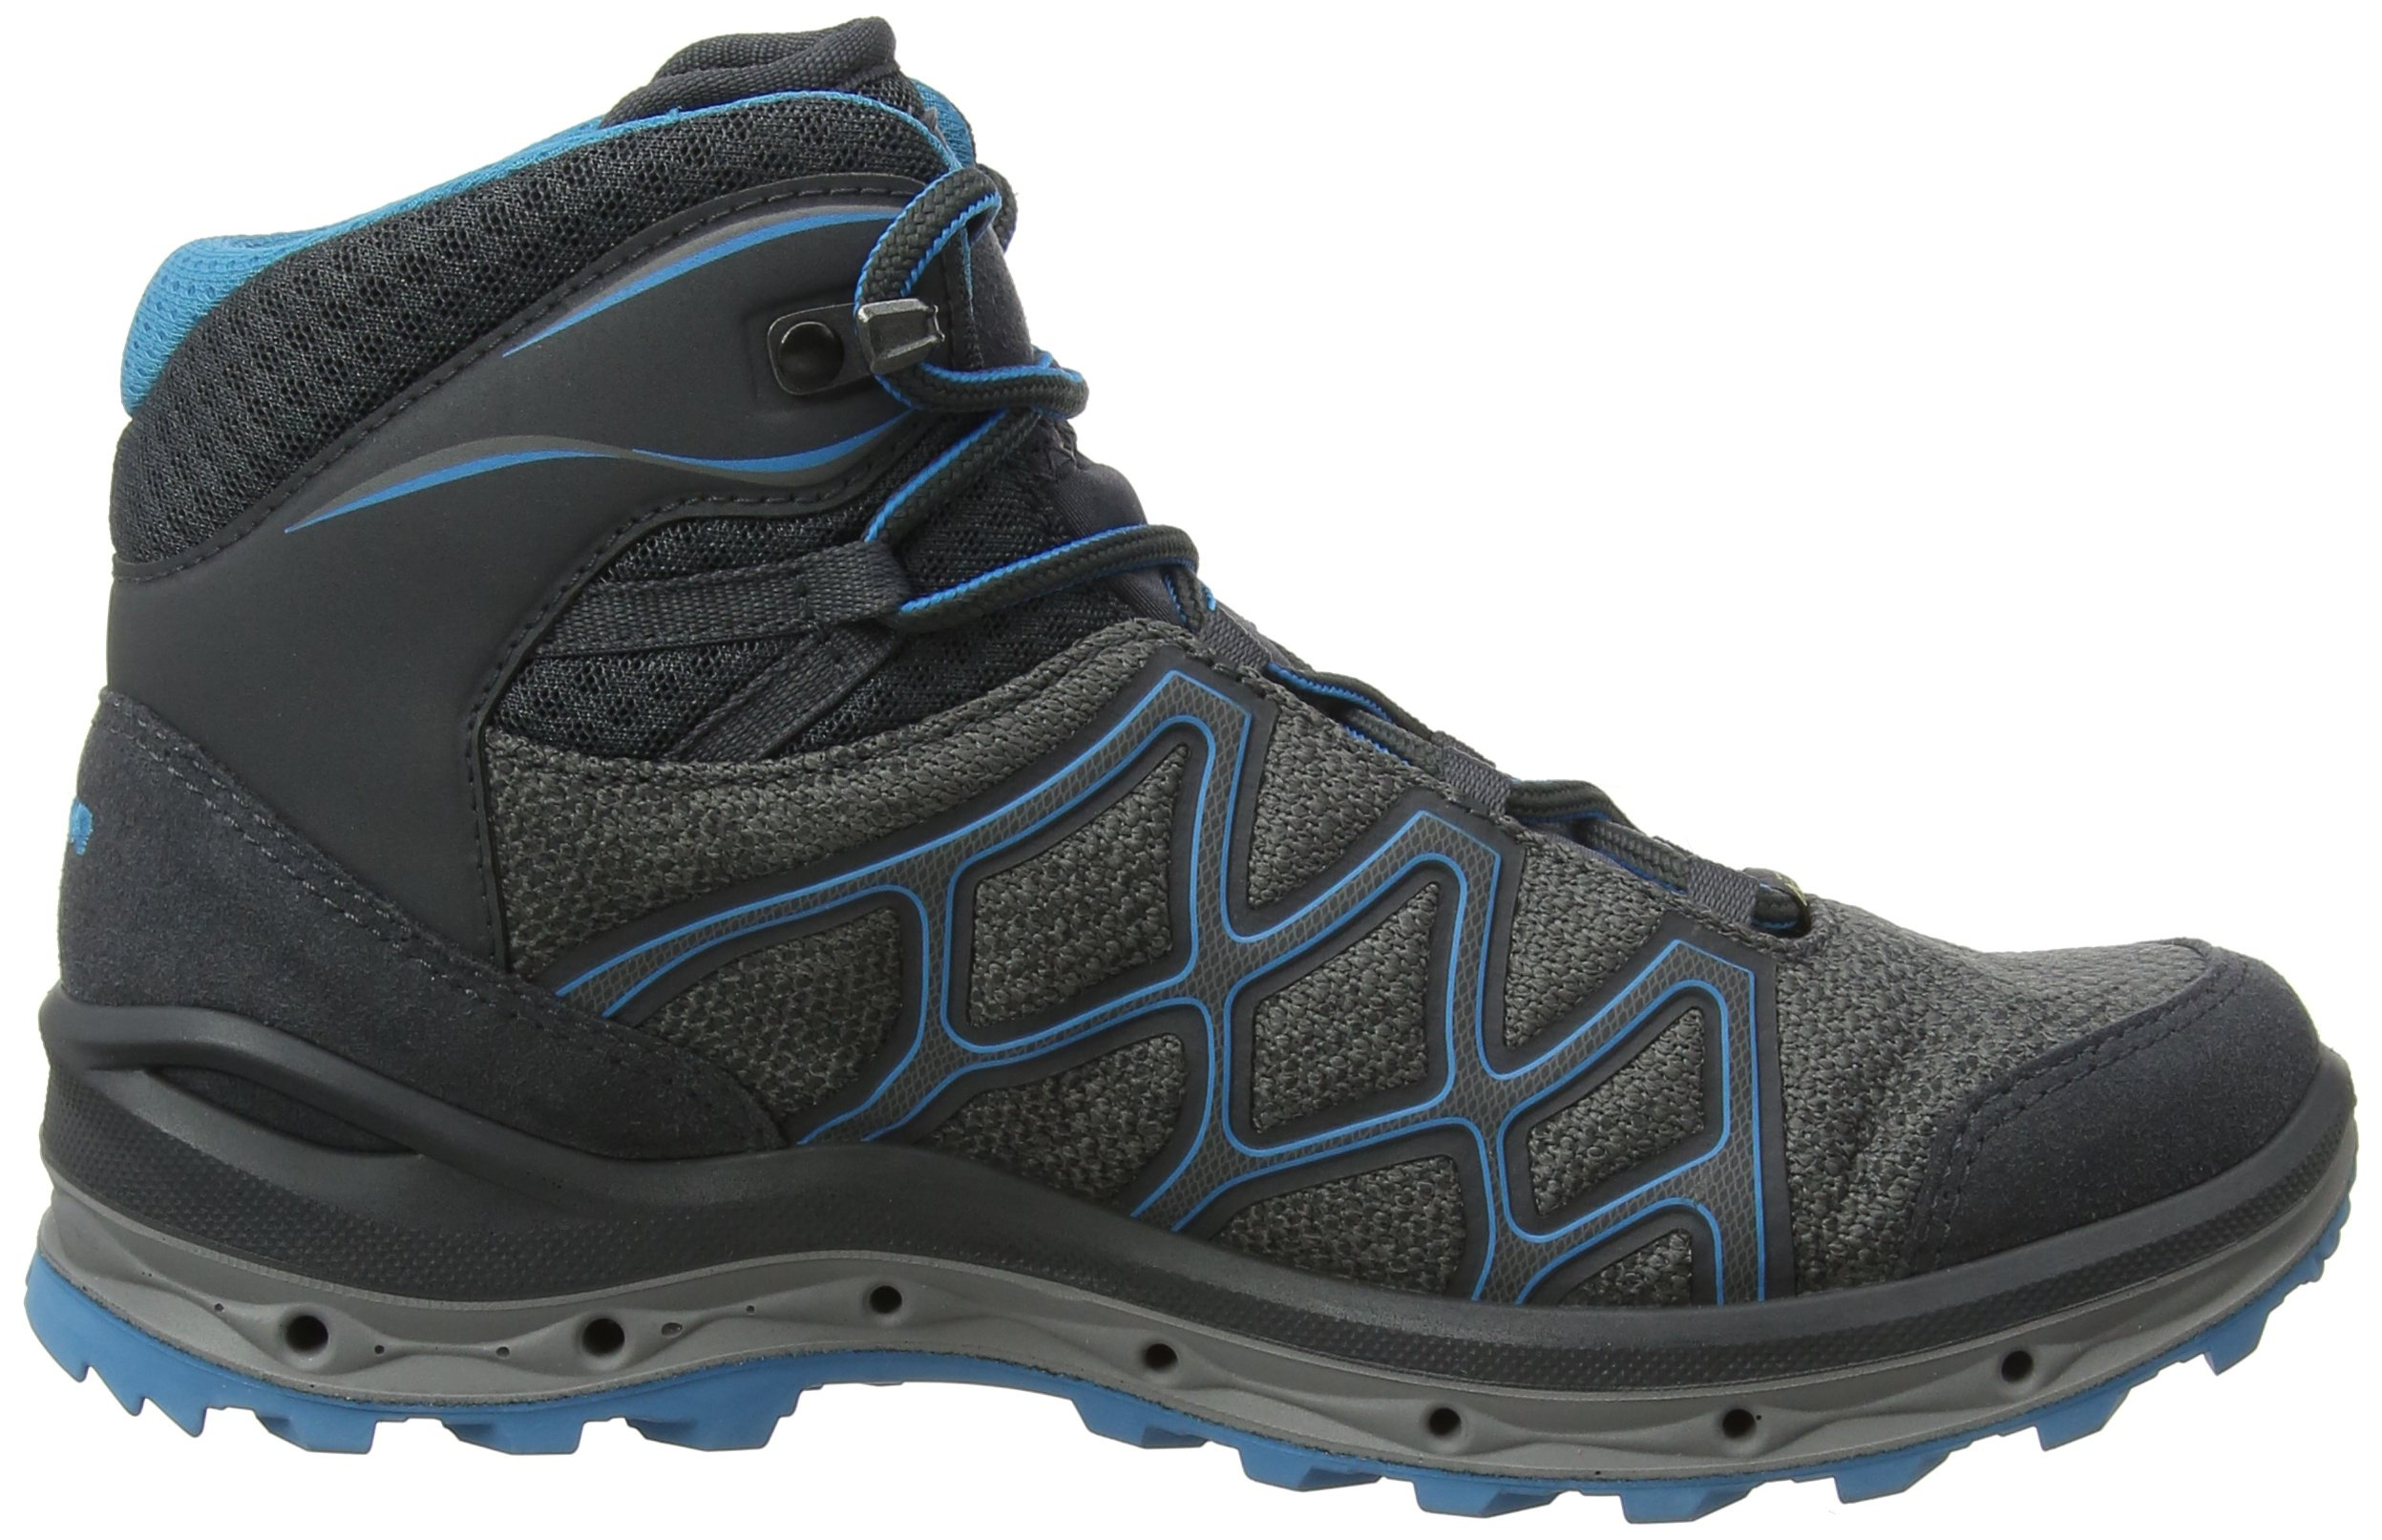 8111C7oF8TL - Lowa Women's AEROX GTX MID W High Rise Hiking Boots